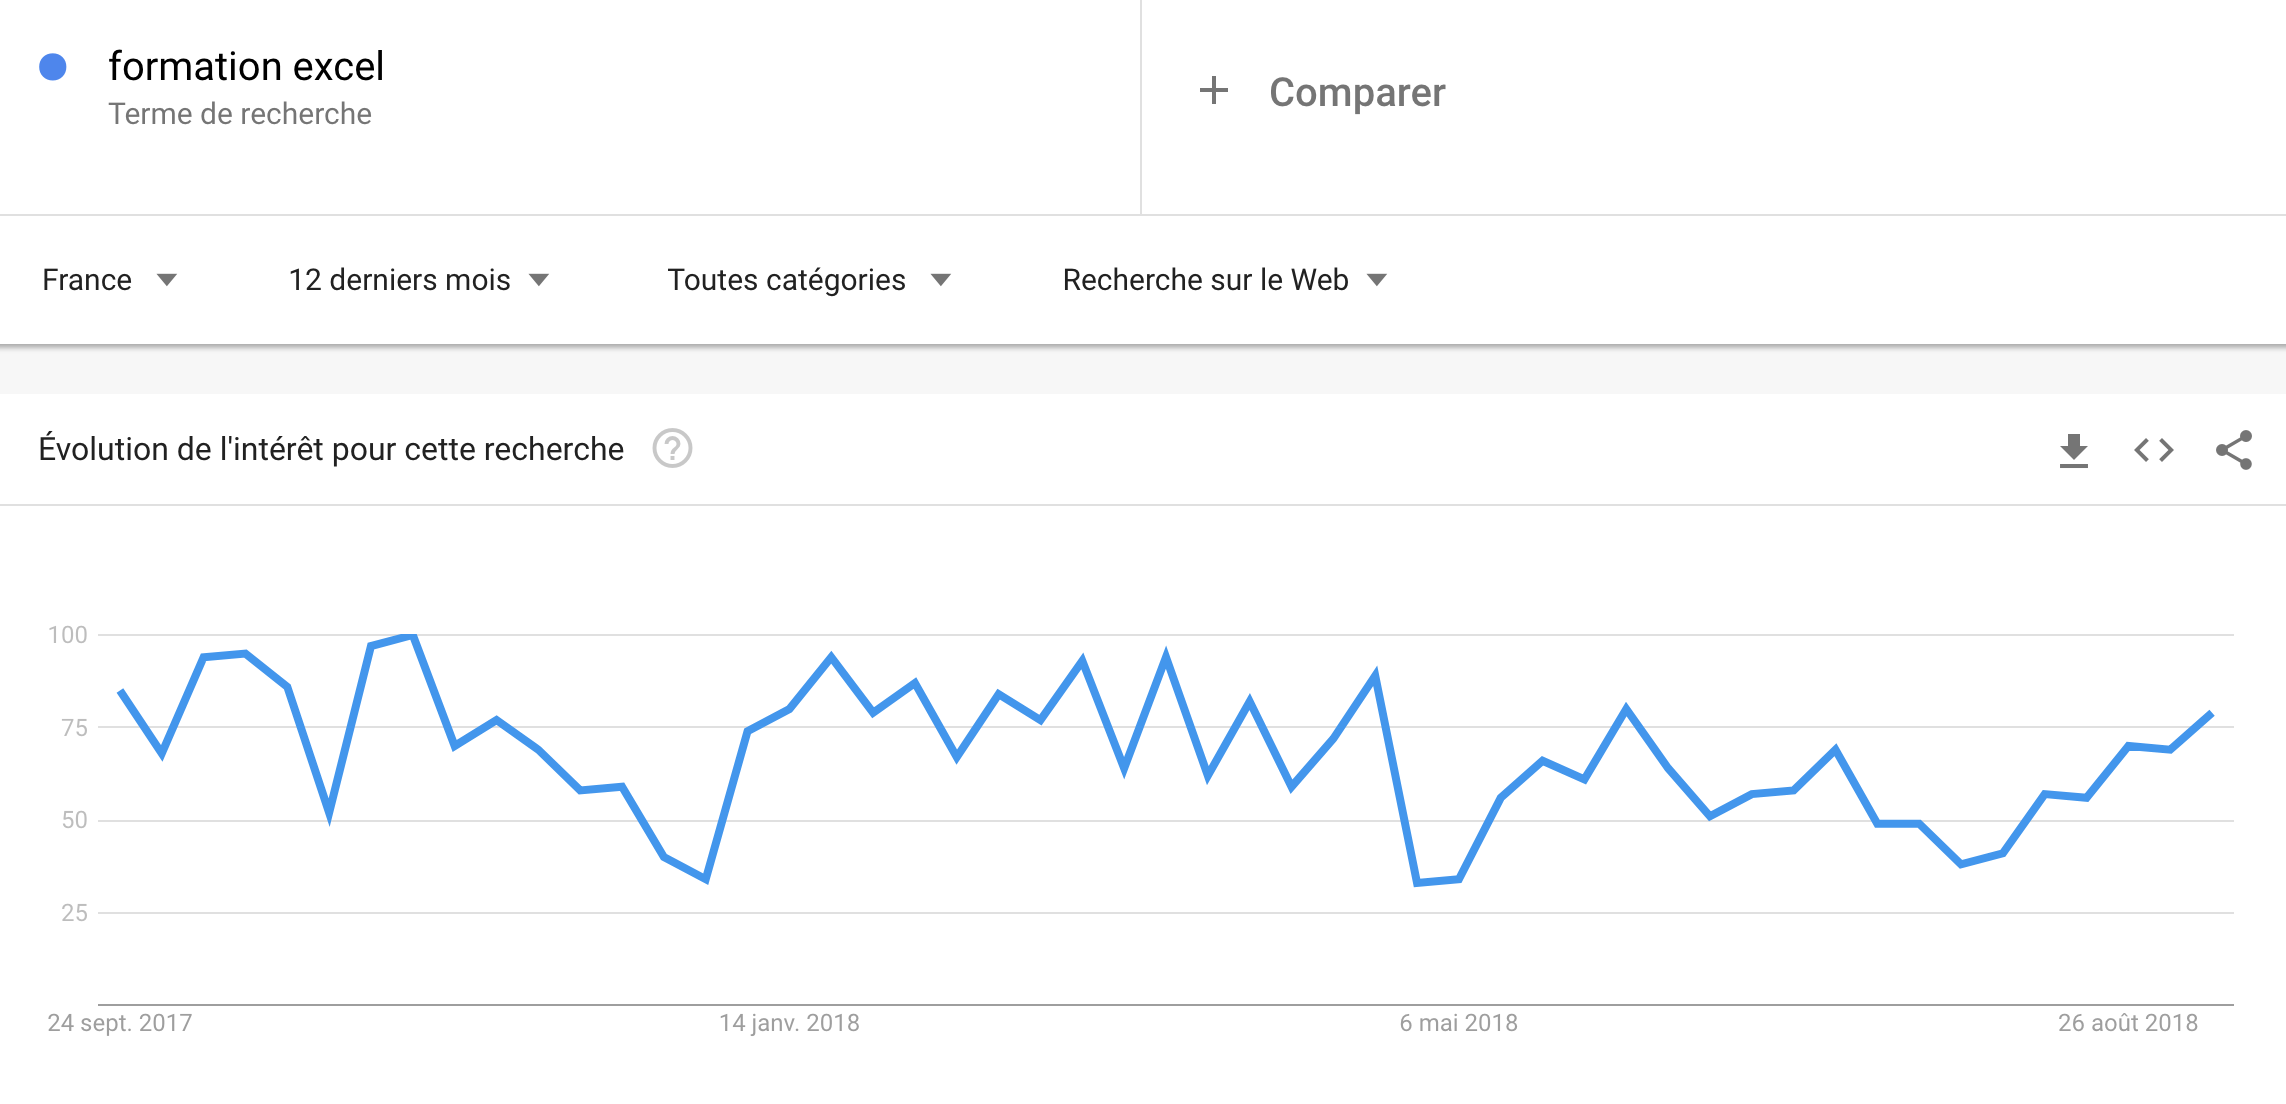 Découvrez 11 outils qui utilisent le Big Data pour faire du Marketing, du Growth Hacking... 4